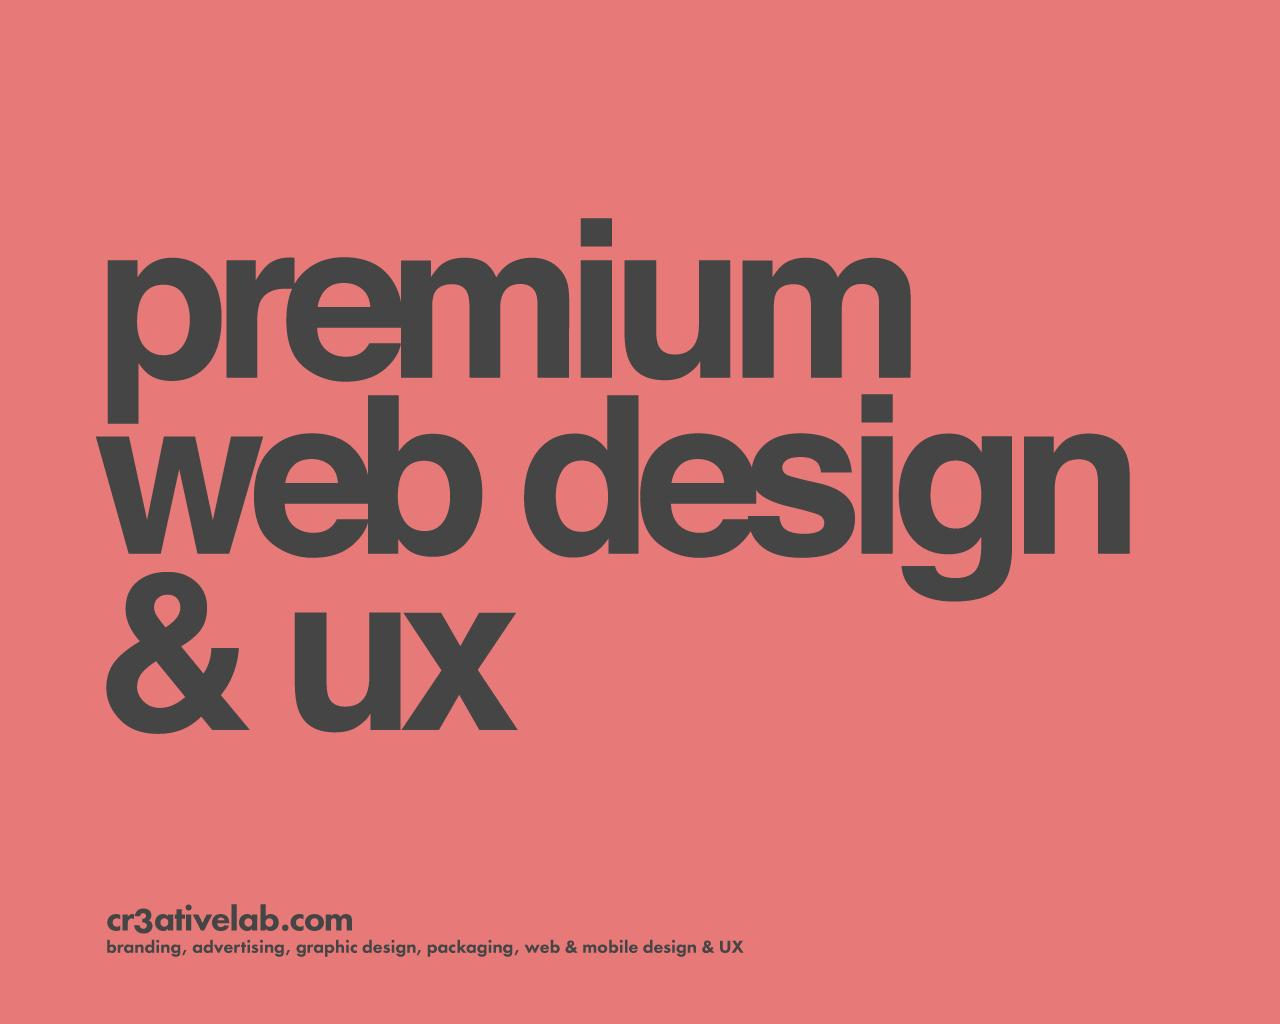 Premium Web Page Design & UX - PSD or Sketch by cr3ativelab - 103016